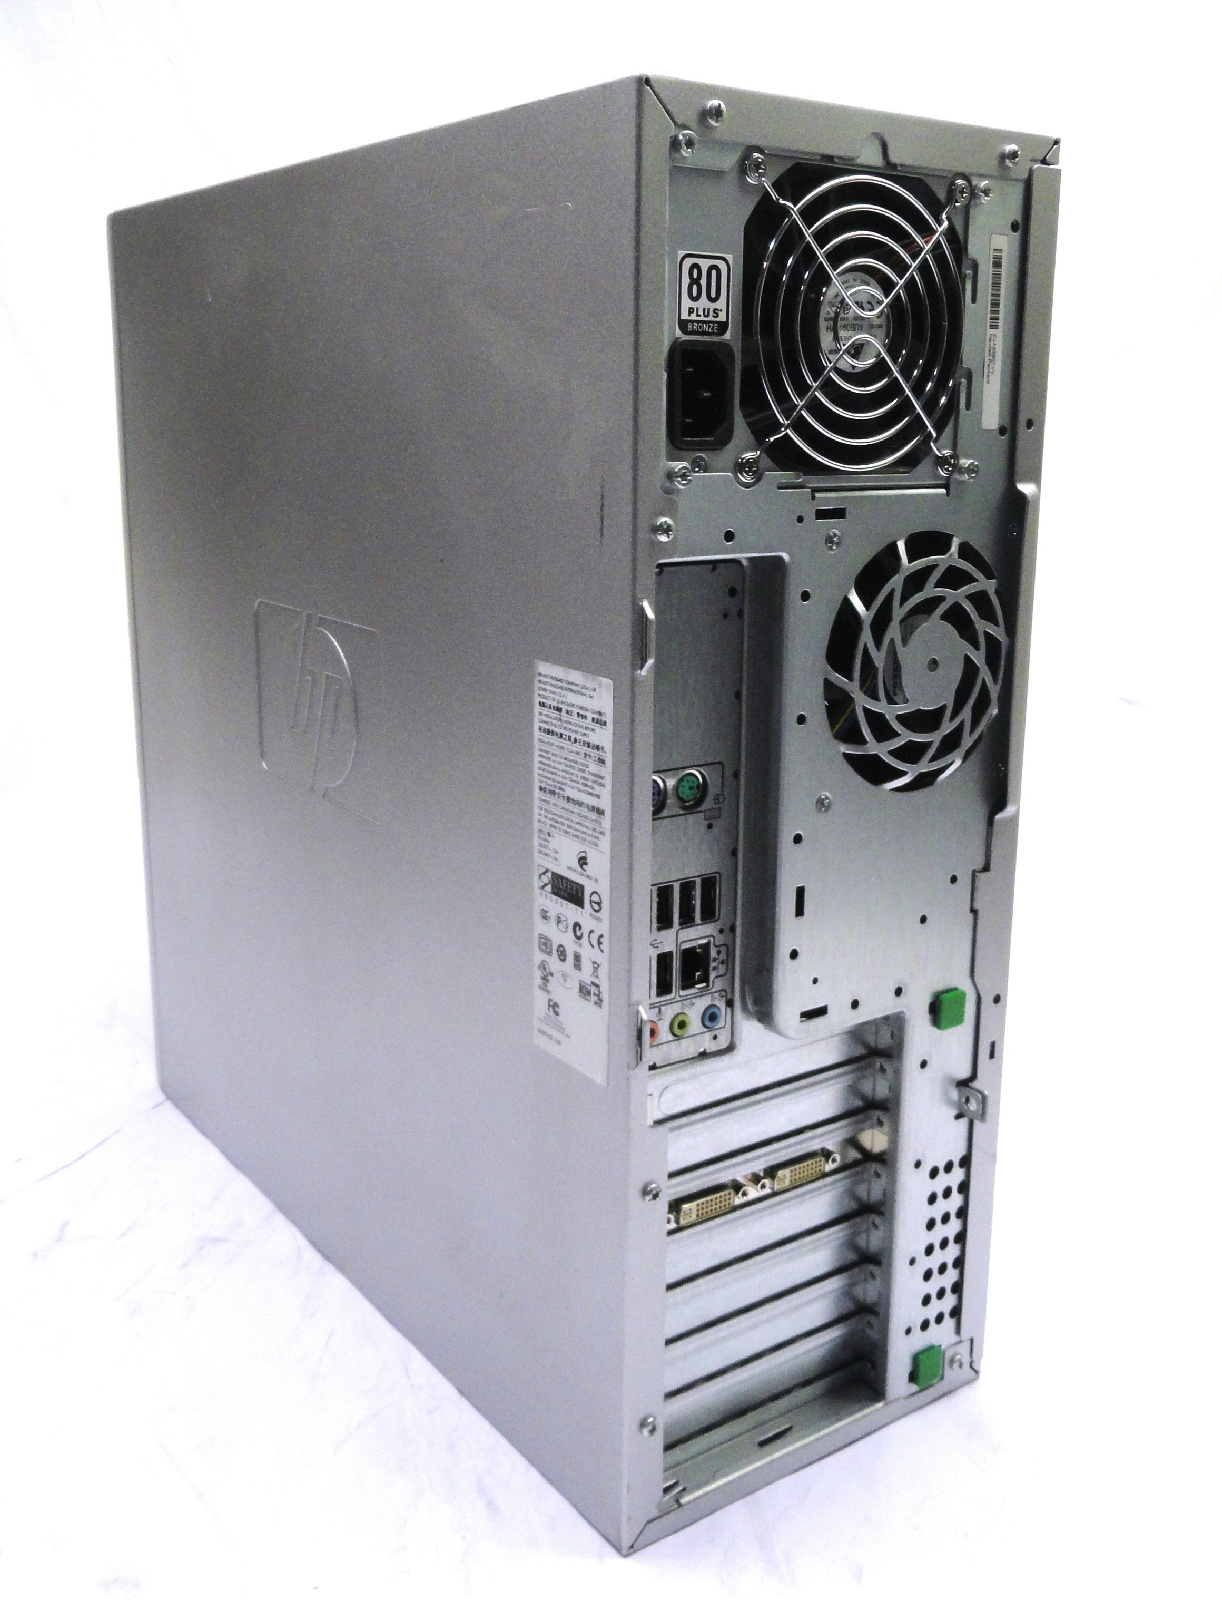 hp z400 workstation xeon 4gb ddr3 dvd rom pc3 10600 1333mhz ebay. Black Bedroom Furniture Sets. Home Design Ideas